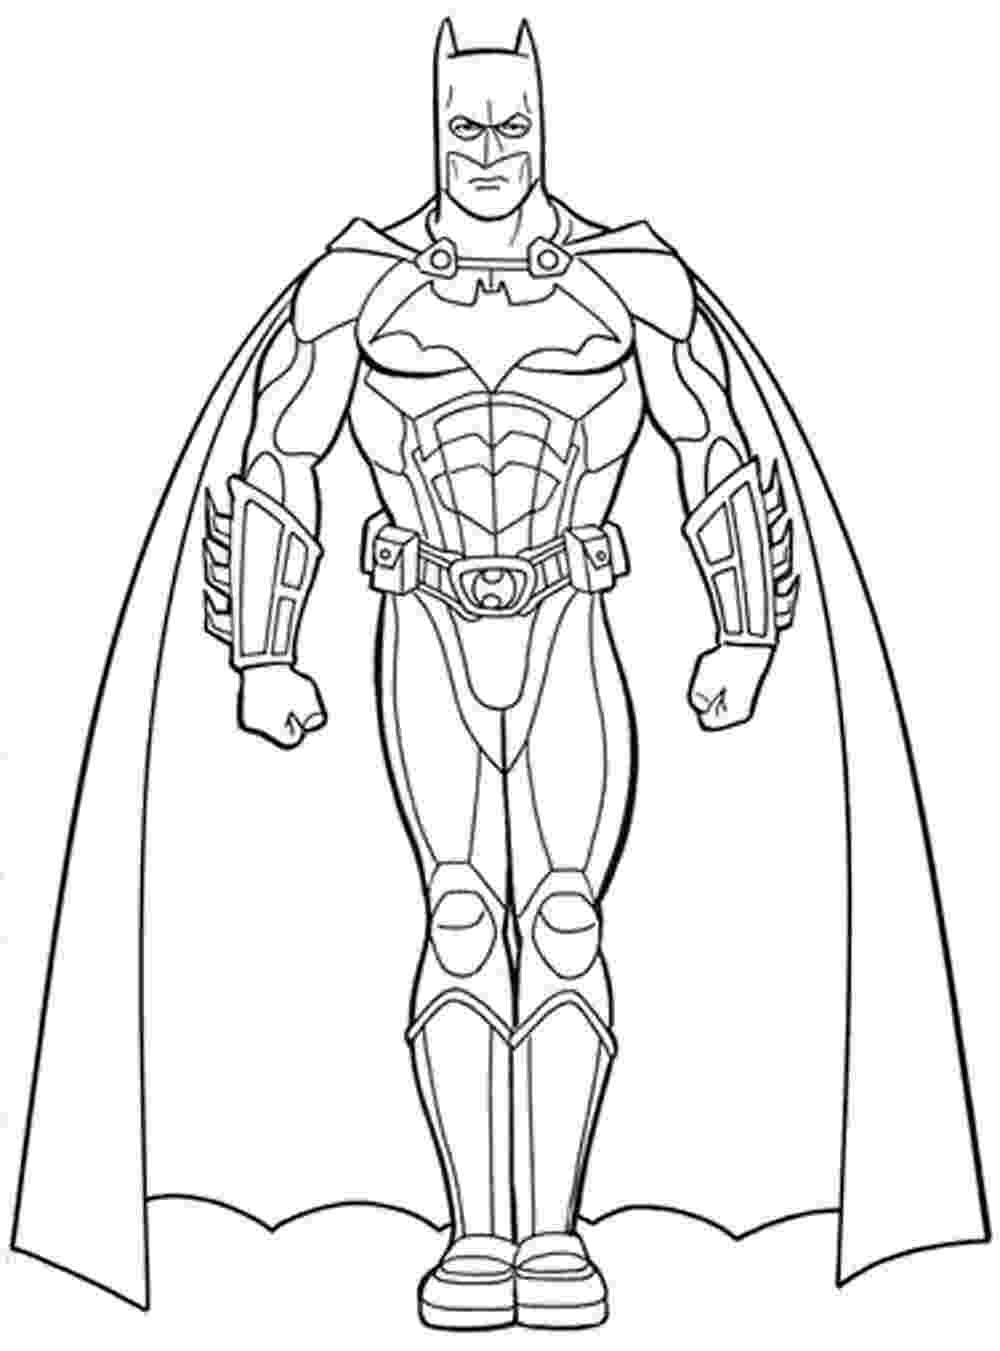 batman coloring pages online batman and his armor coloring pages hellokidscom pages coloring batman online